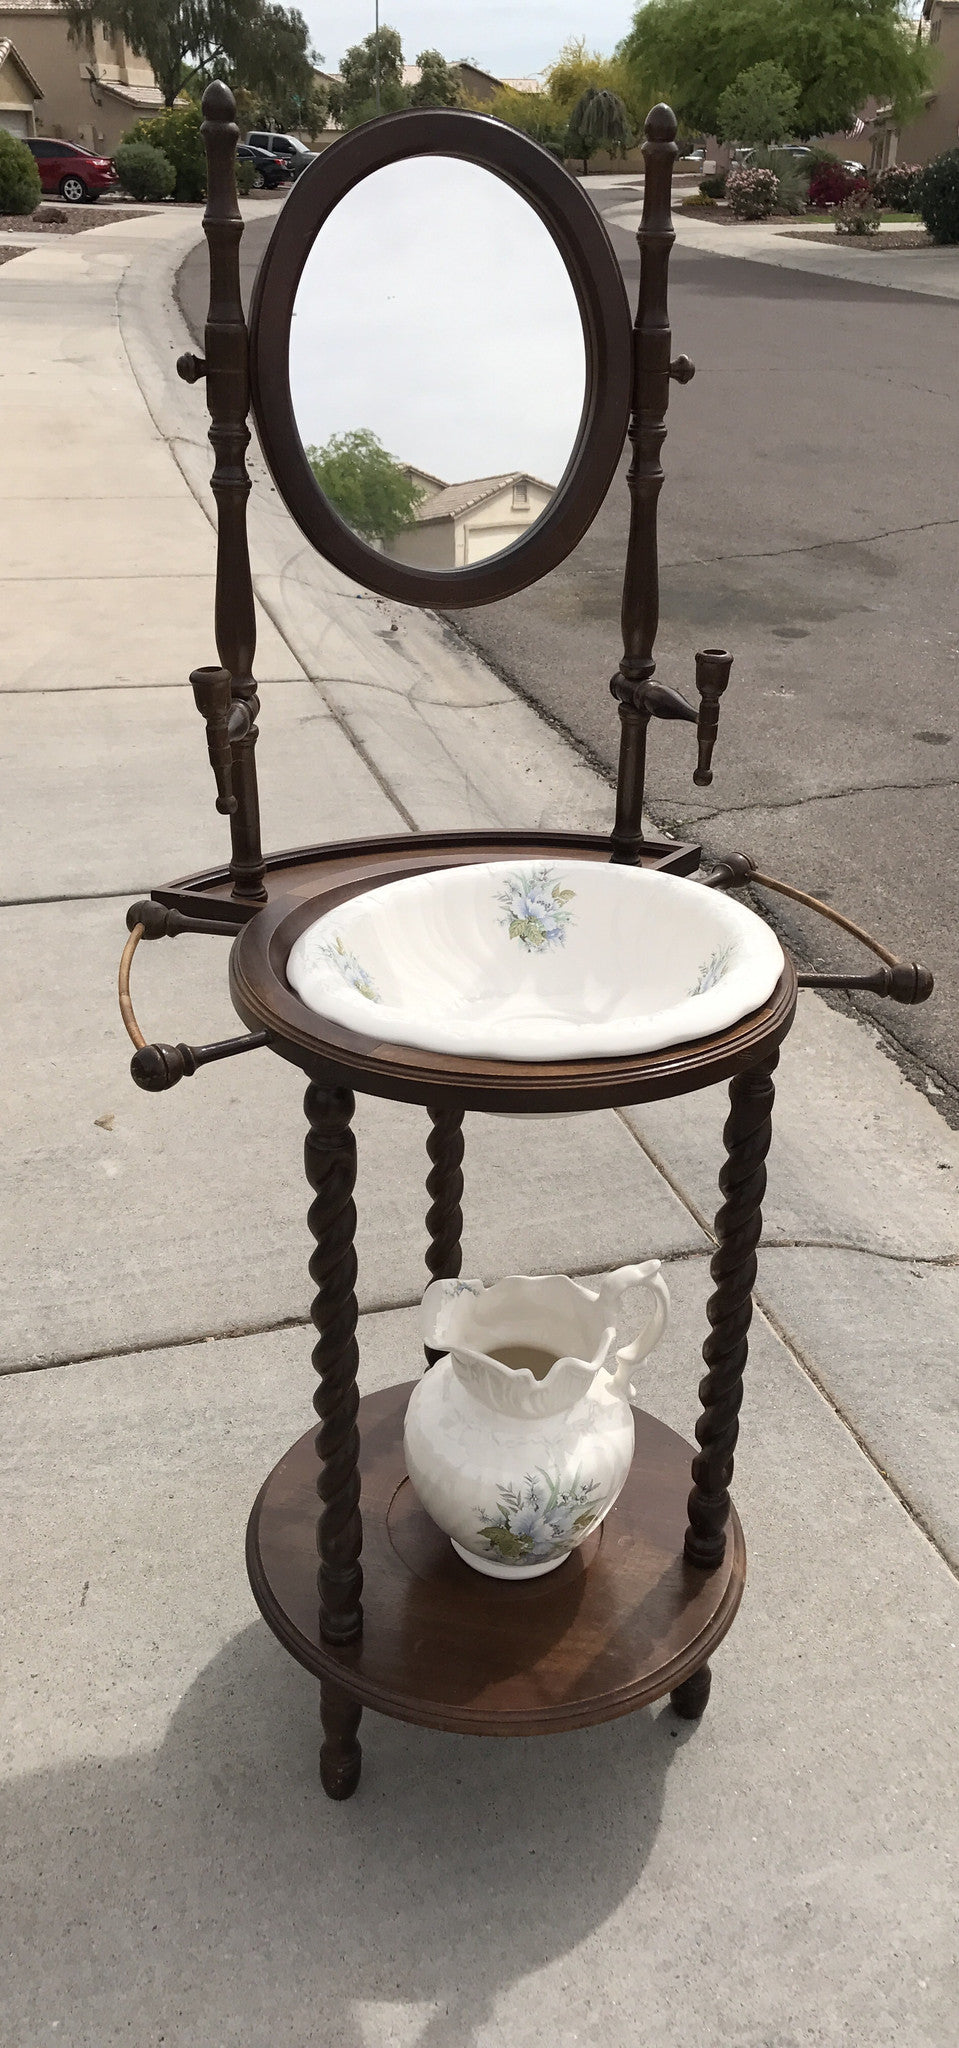 Antique Style Dry Sink Vanity With Mirror